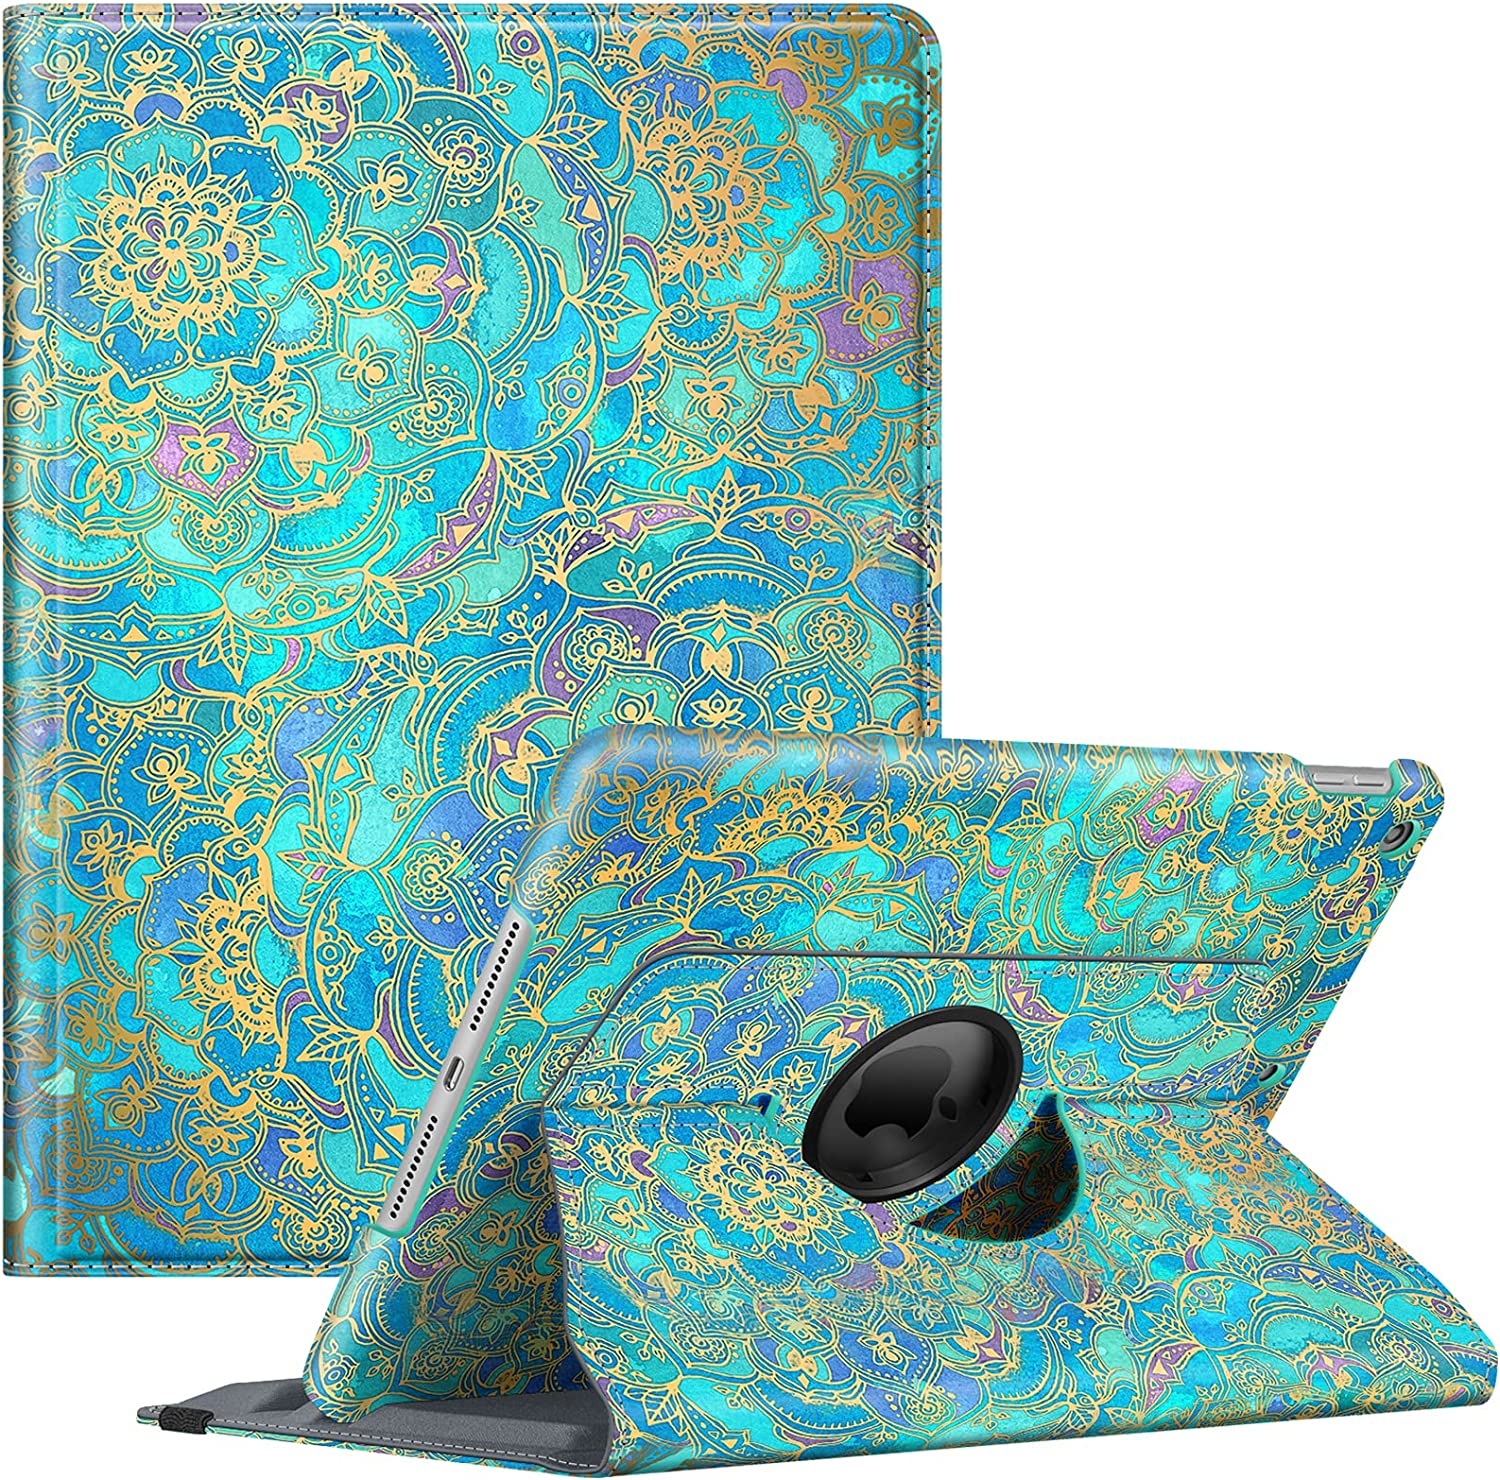 Fintie Rotating Case for iPad Generation Online Challenge the lowest price of Japan limited product Genera 9th 2021 8th